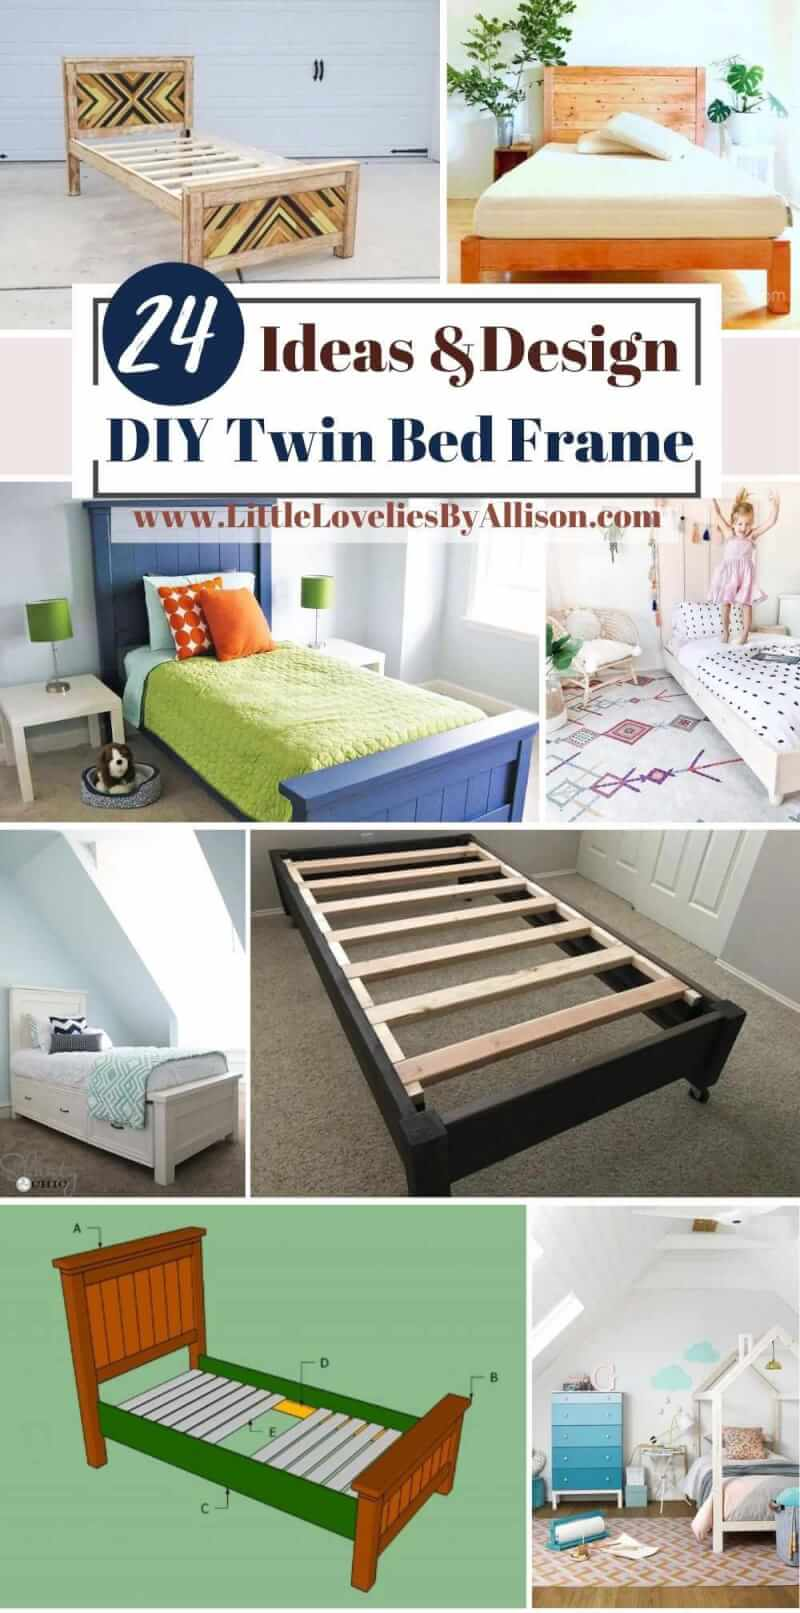 24 DIY Twin Bed Frame Plans_ How To Build A Twin Bed